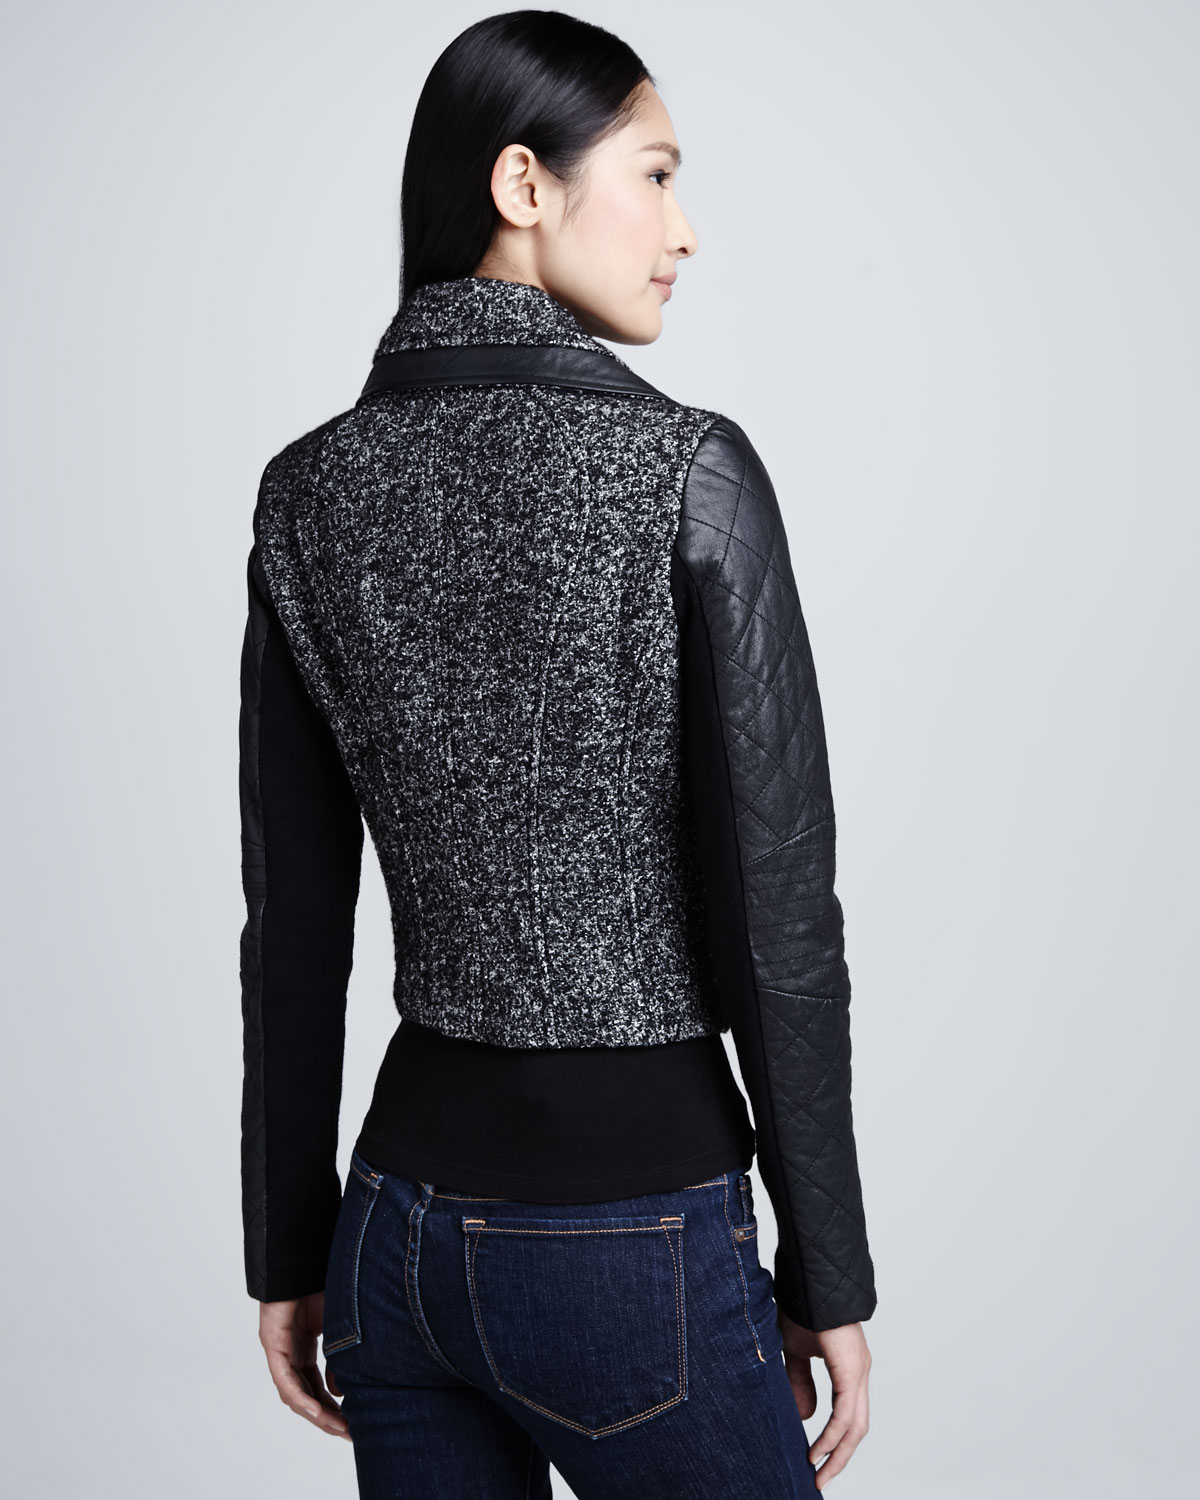 Bcbgmaxazria Tweed Jacket with Leather Sleeves in Black | Lyst